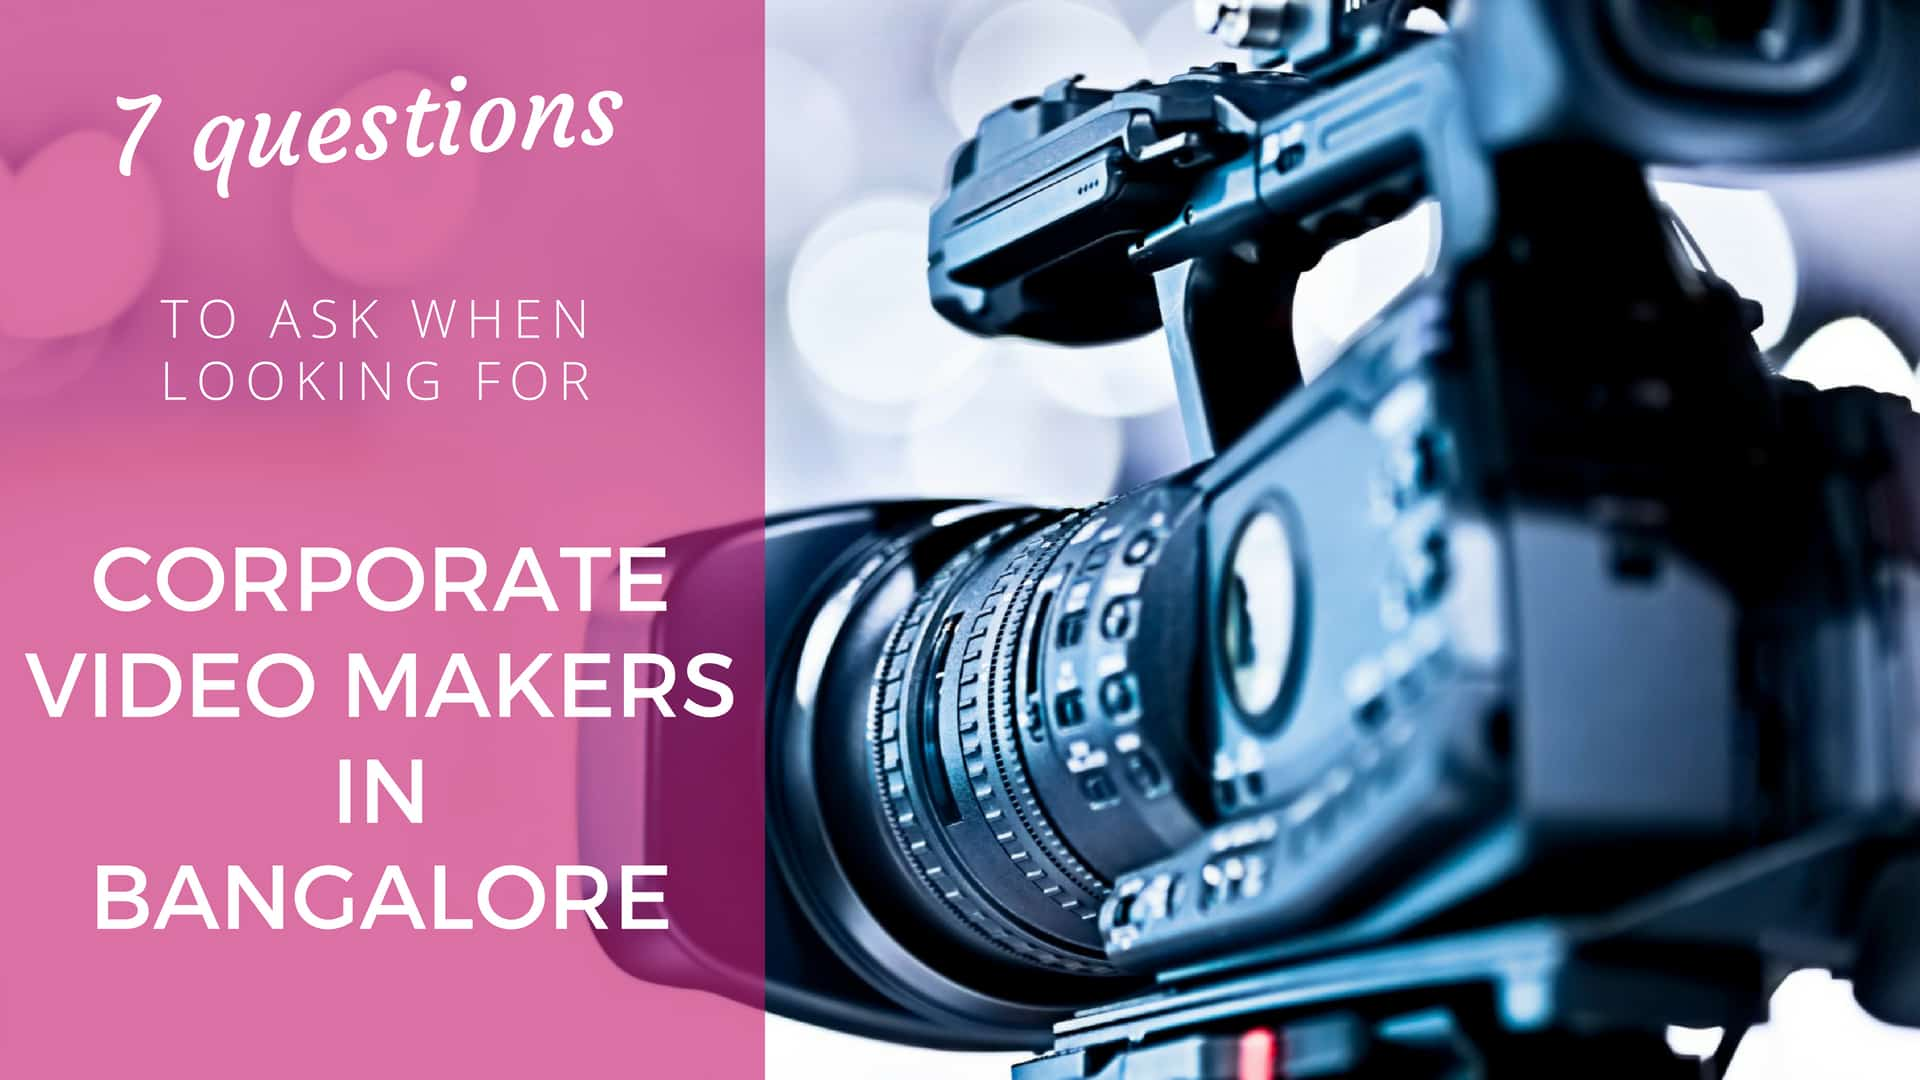 7 Questions To Ask When Looking For Corporate Video Makers In Bangalore